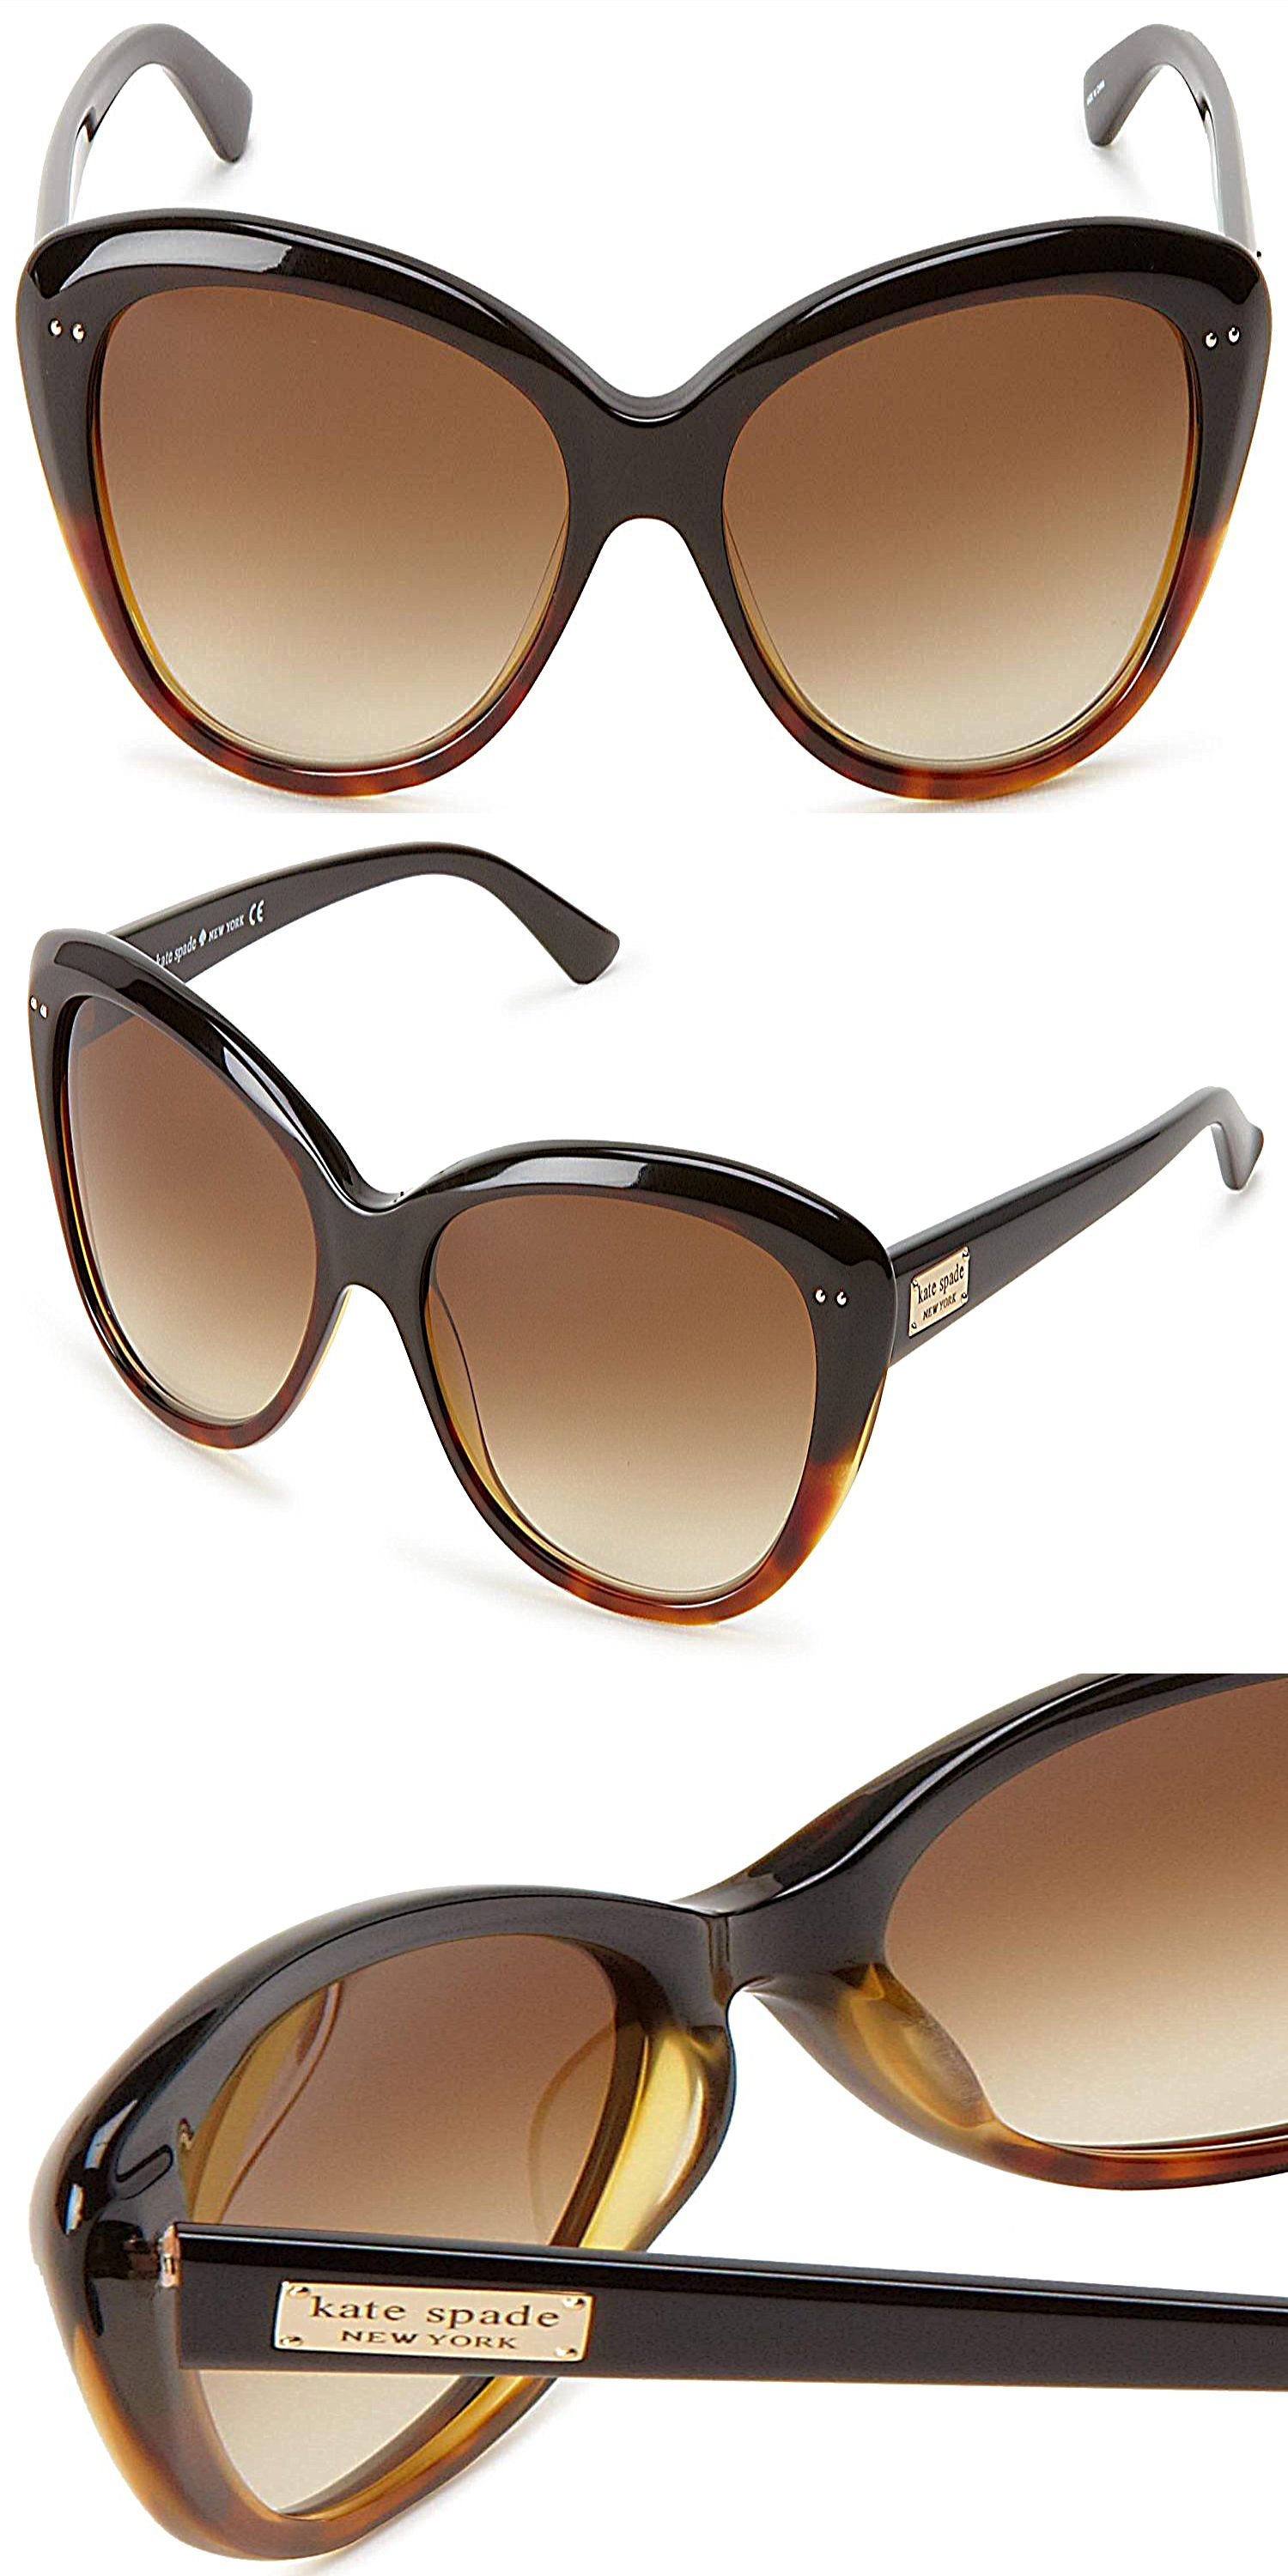 7c7739fed4 Kate Spade New York Angelique Cat-Eye Sunglasses womens sunglasses ...